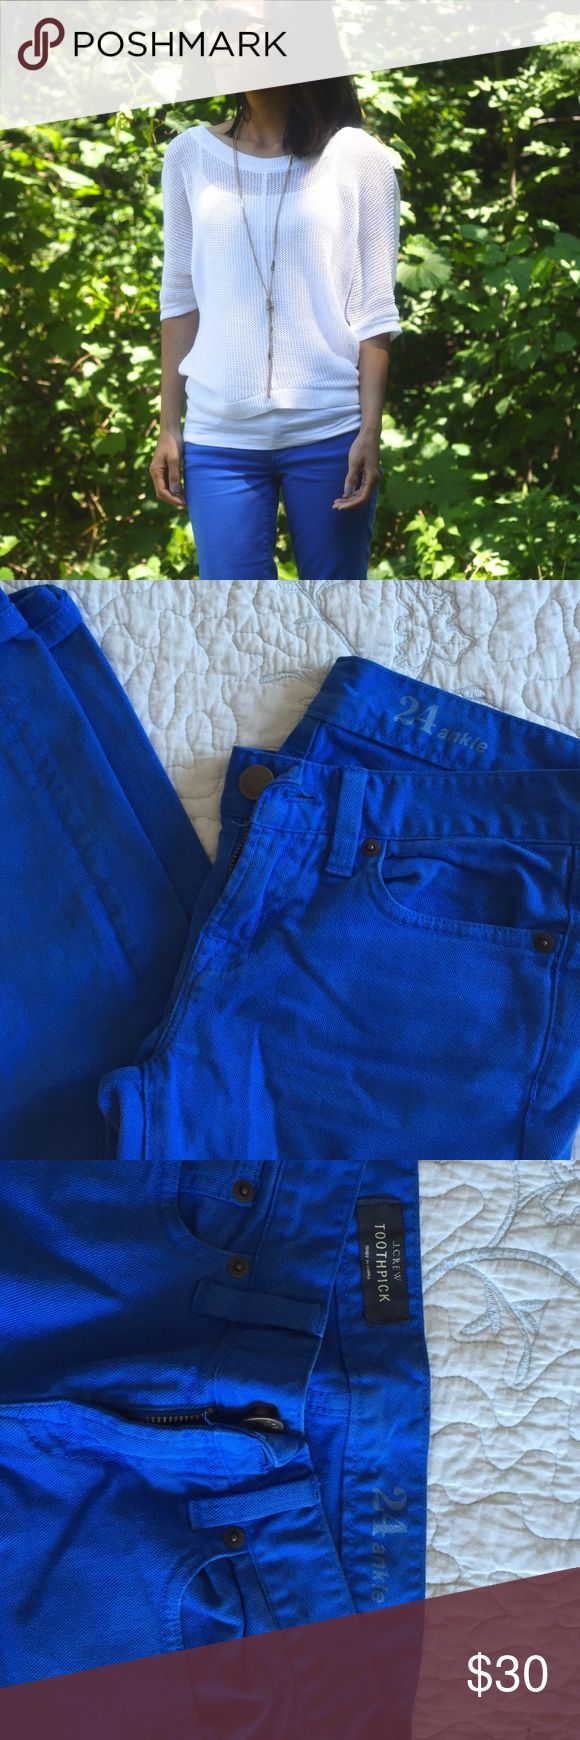 Jcrew toothpick ankle royal blue jeans Jcrew toothpick pants . The ankle length is perfect for petites! Beautiful bright blue color J. Crew Pants Ankle & Cropped